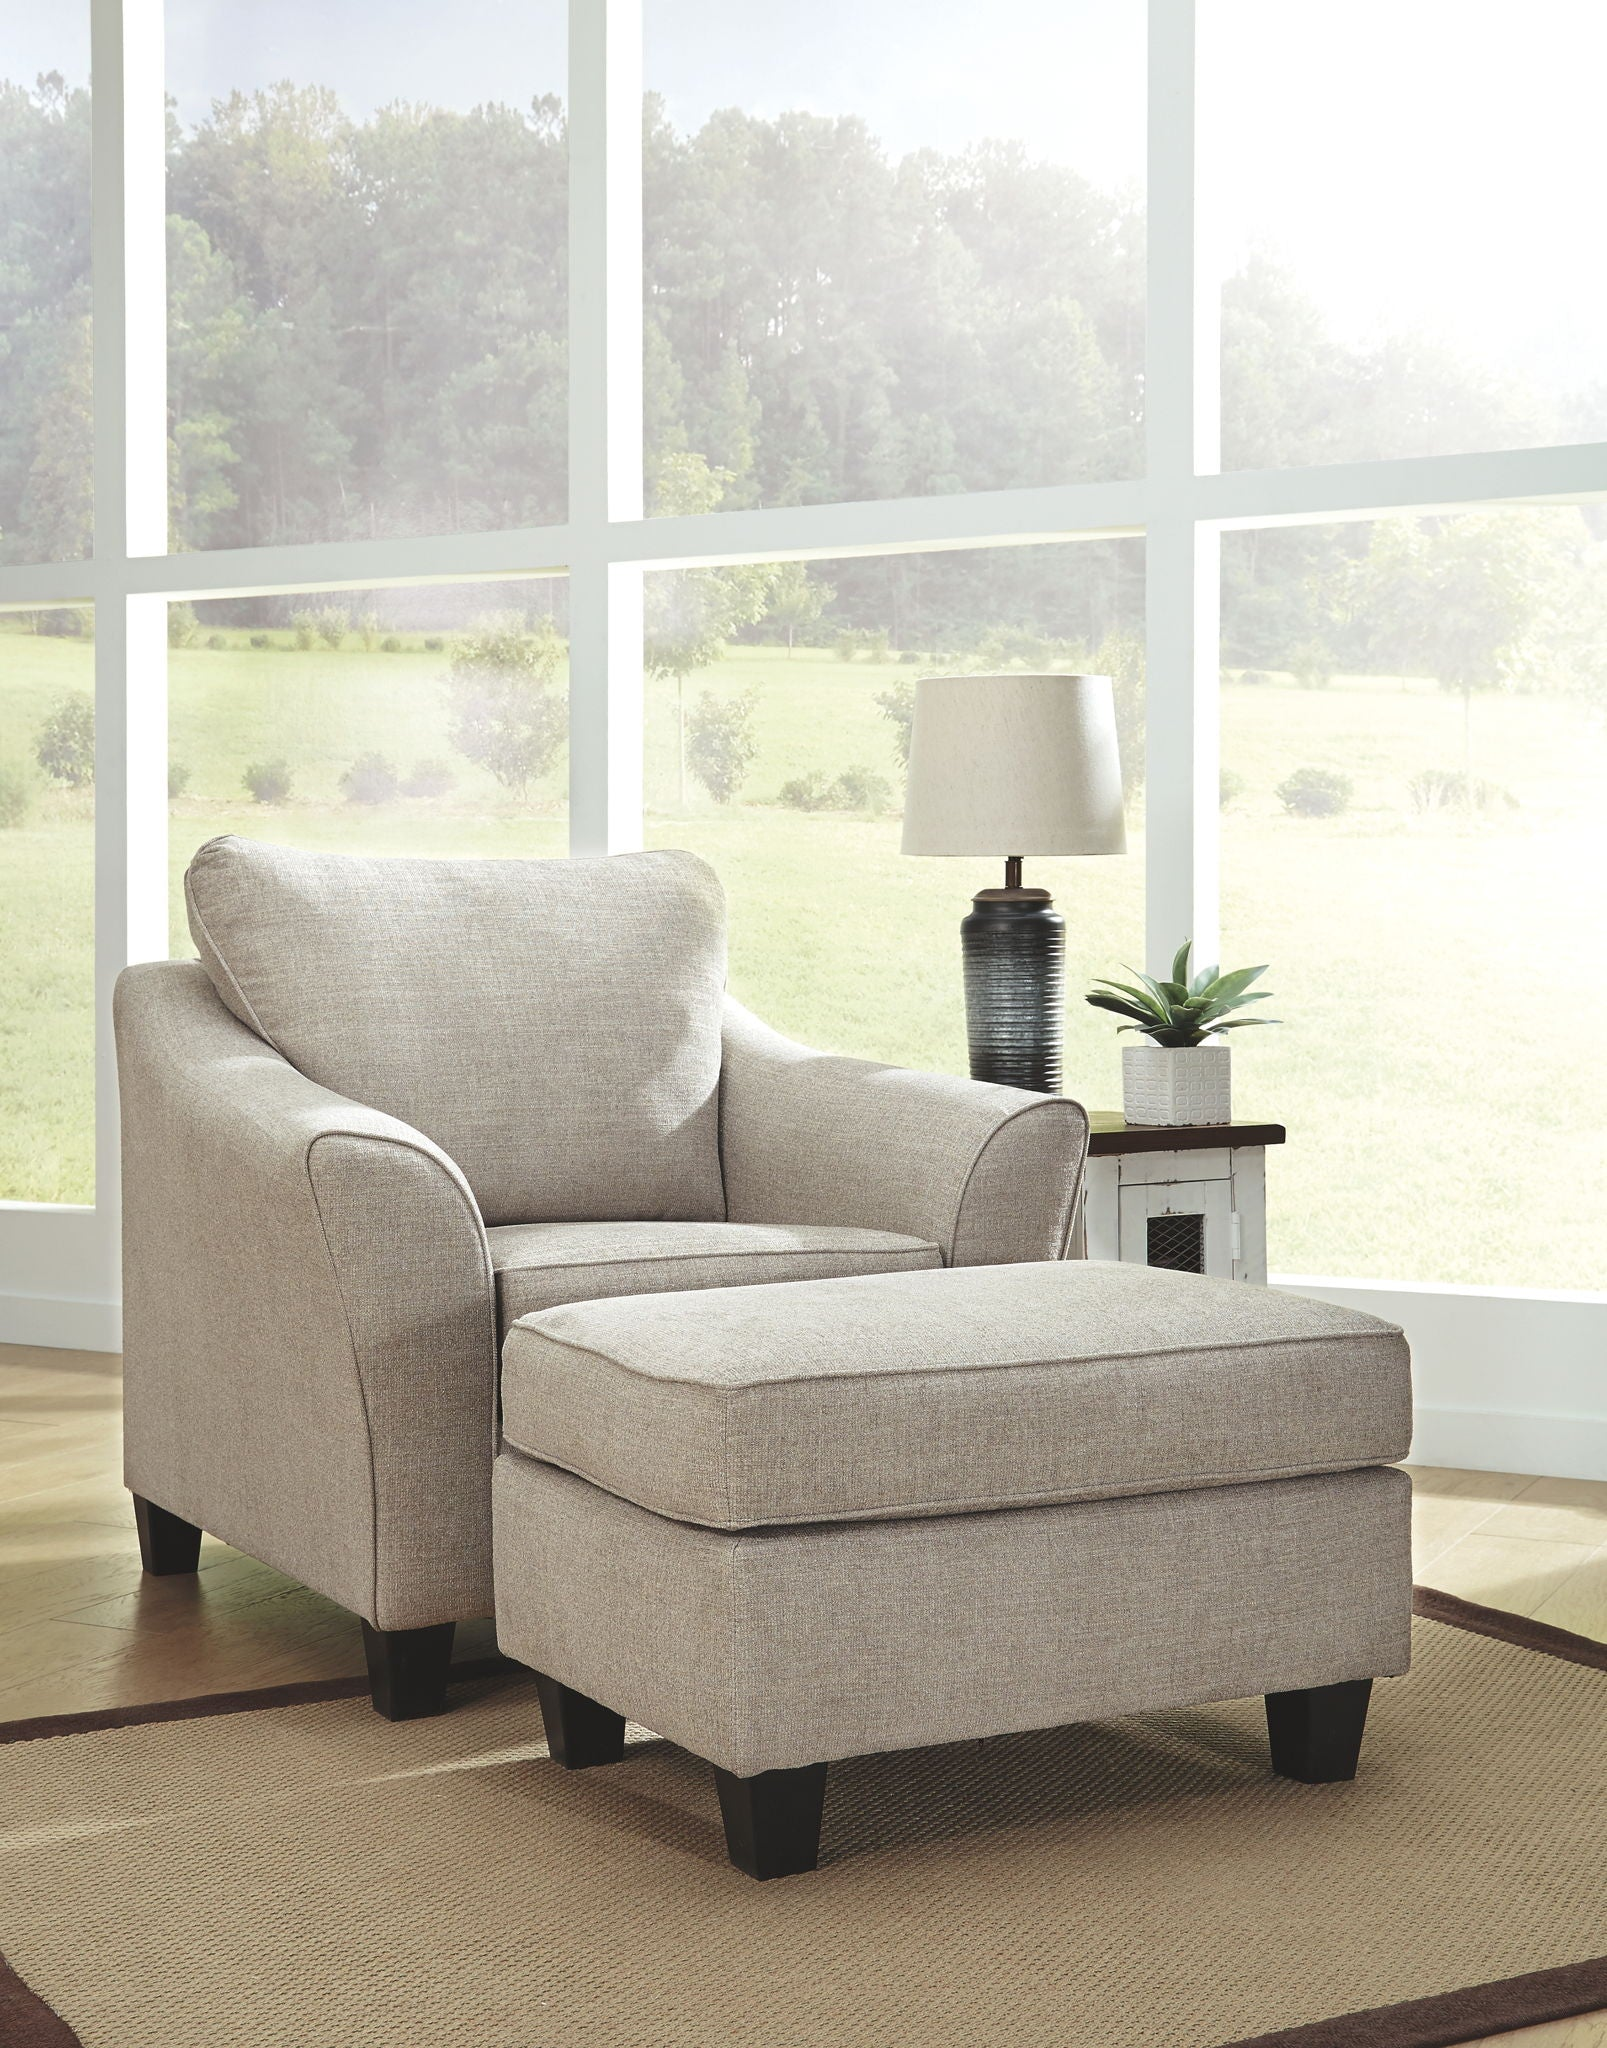 Abney Chair | Calgary's Furniture Store